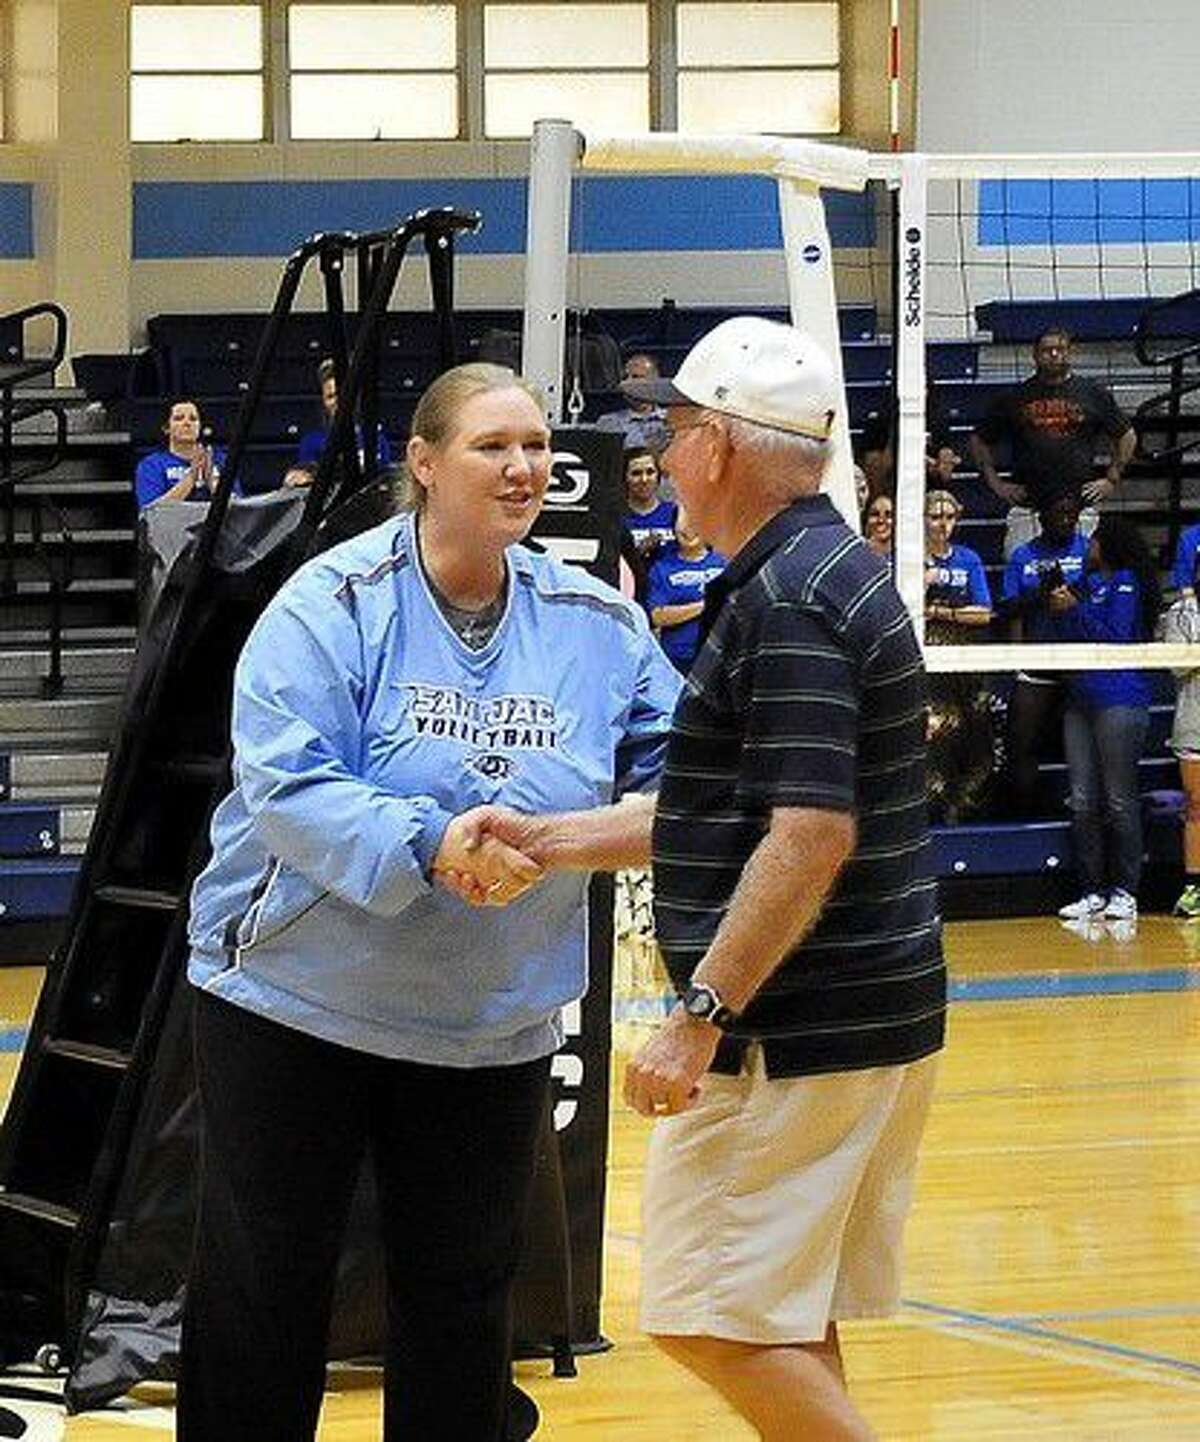 This year's San Jacinto College Military Appreciation Volleyball Tournament,Sept. 1-3, will feature 12 volleyball teams from around the country, a reception honoring military veterans, food vendors, music and tailgating activities. Pictured is San Jacinto College Volleyball Head Coach Sharon Nelson recognizing a military veteran from the audience at last year's military appreciation tournament. Photo credit: Jeannie Peng Mansyur, San Jacinto College marketing, public relations, and government affairs department.